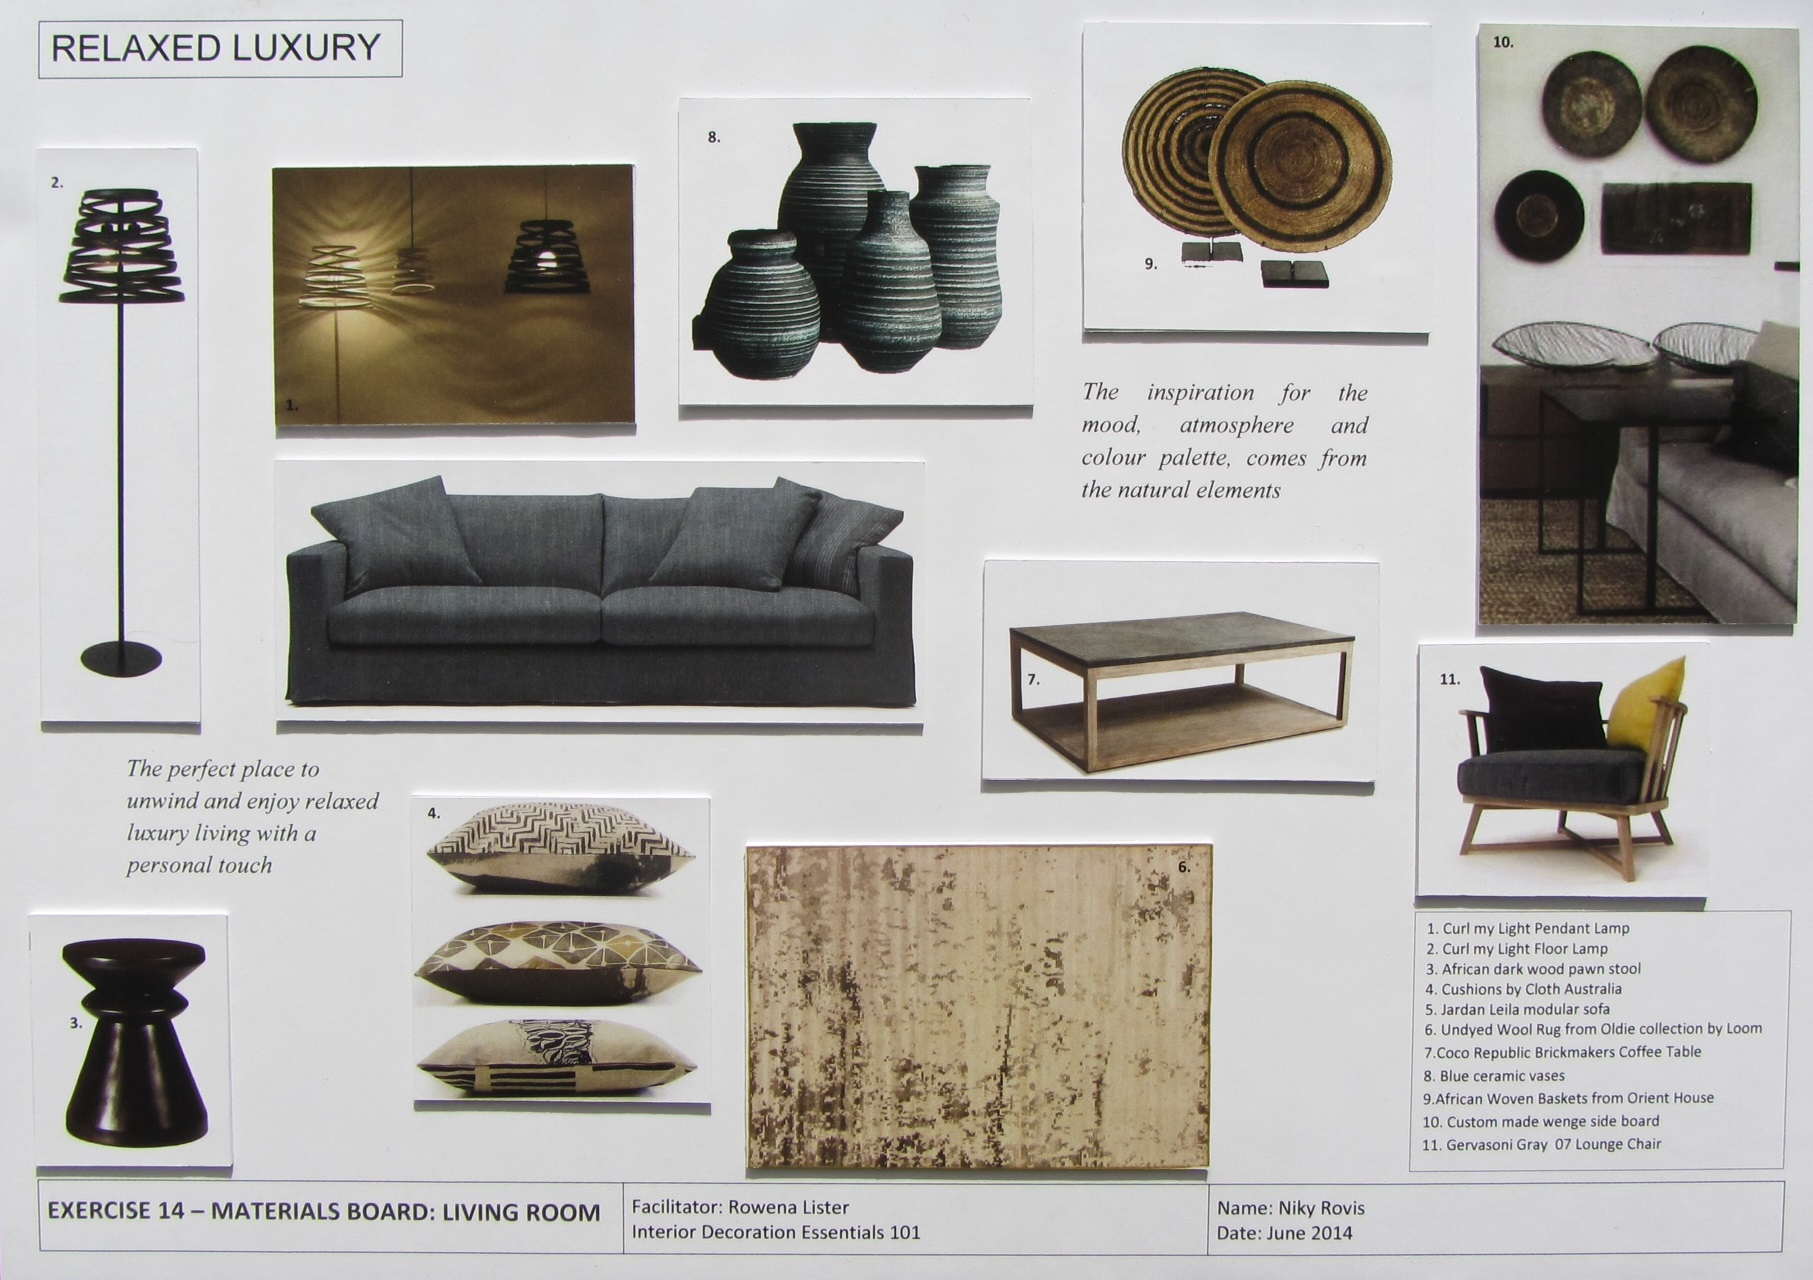 Interior Design Furniture Selection ~ Niky rovis how i started my decorating adventure